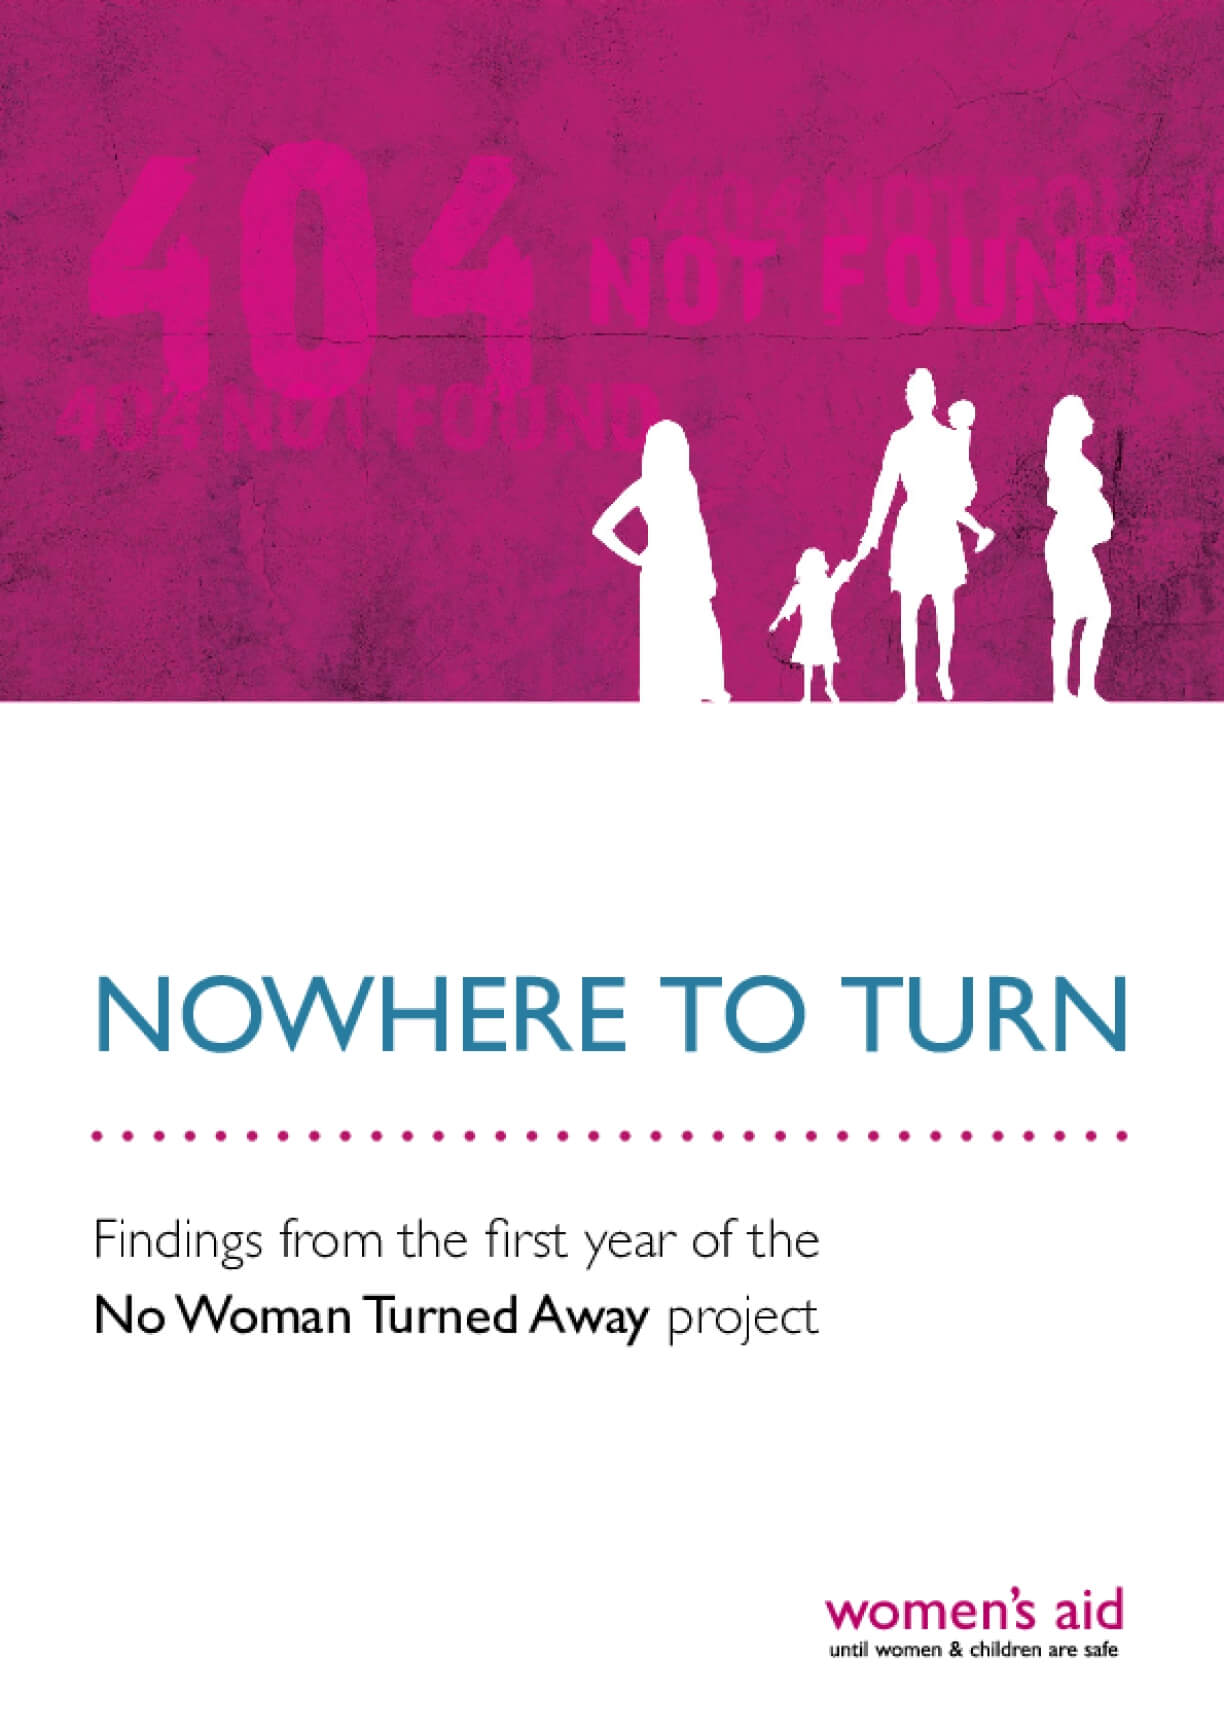 Nowhere to Turn: Finding from the First Year of the No Woman Turned Away Project